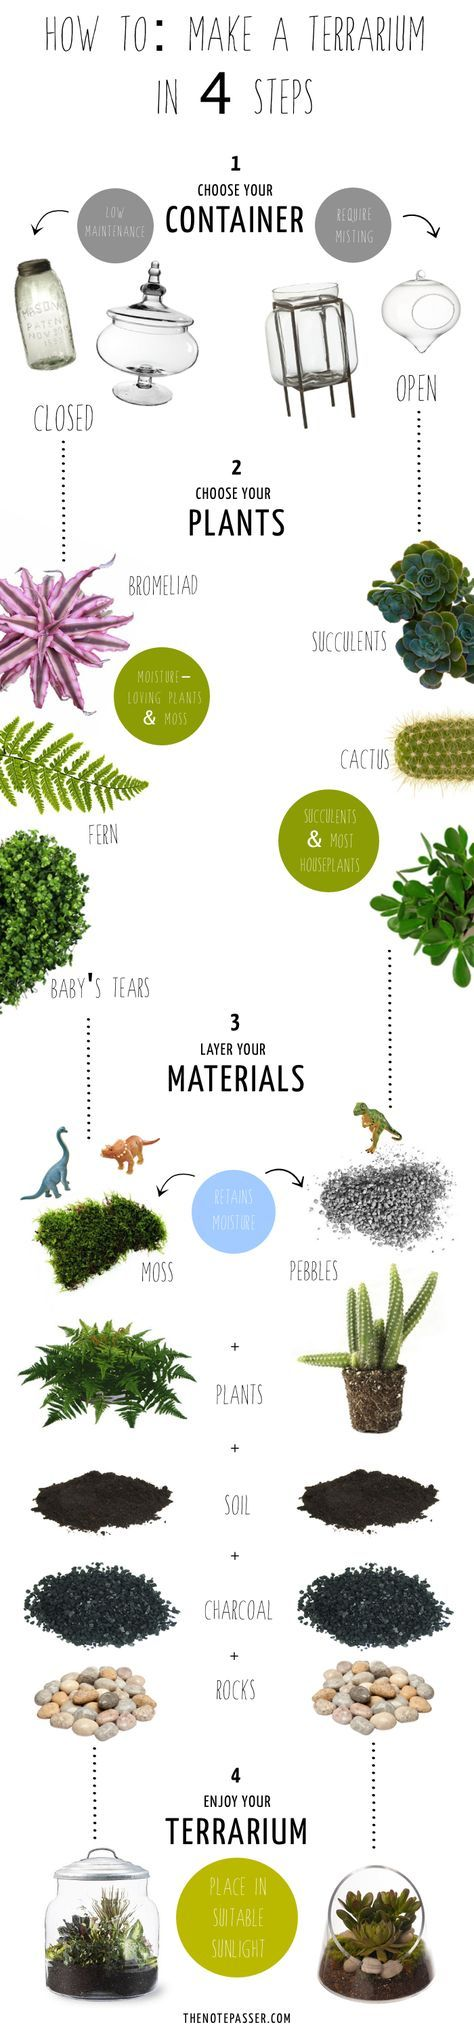 How To: Throw a Terrarium Party (the charcoal is an important step to keep the mold out!)